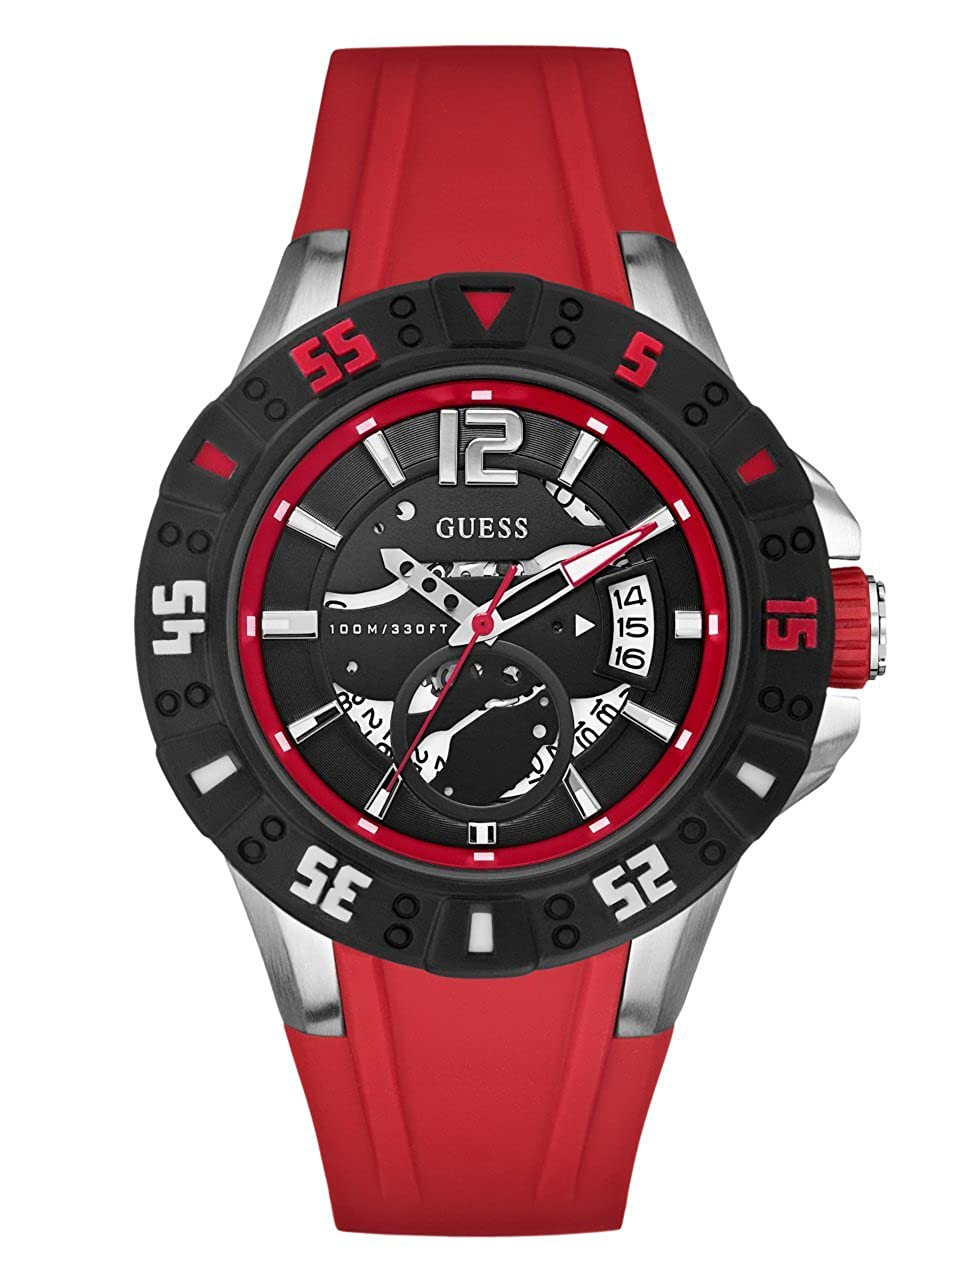 Guess Best Sports Watch Brands in India 2020